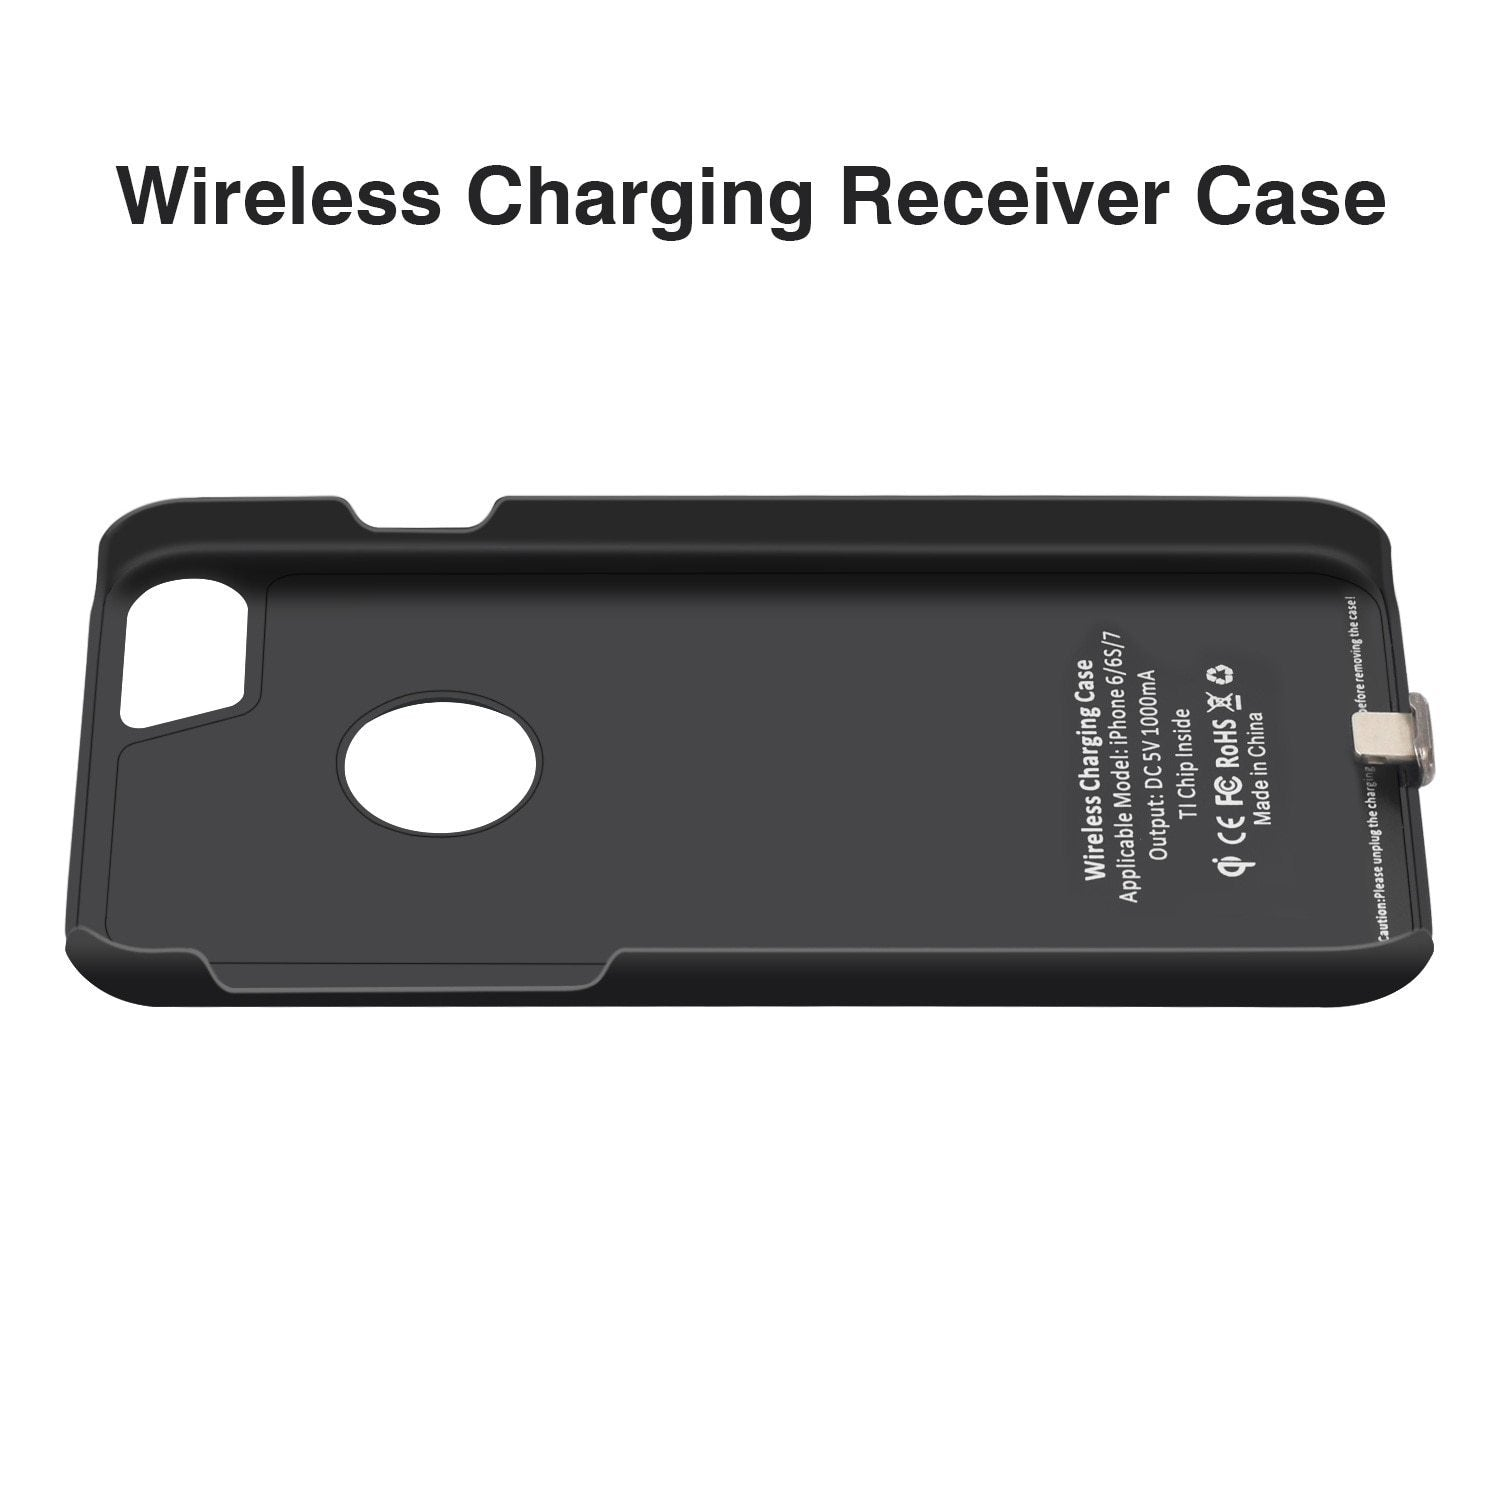 Qi Wireless Charger Receiver Case For Iphone 7 6 6S Mobile Phone Case Wireless Charging Transmitter Cover For Iphone 7 Plus 6 6S